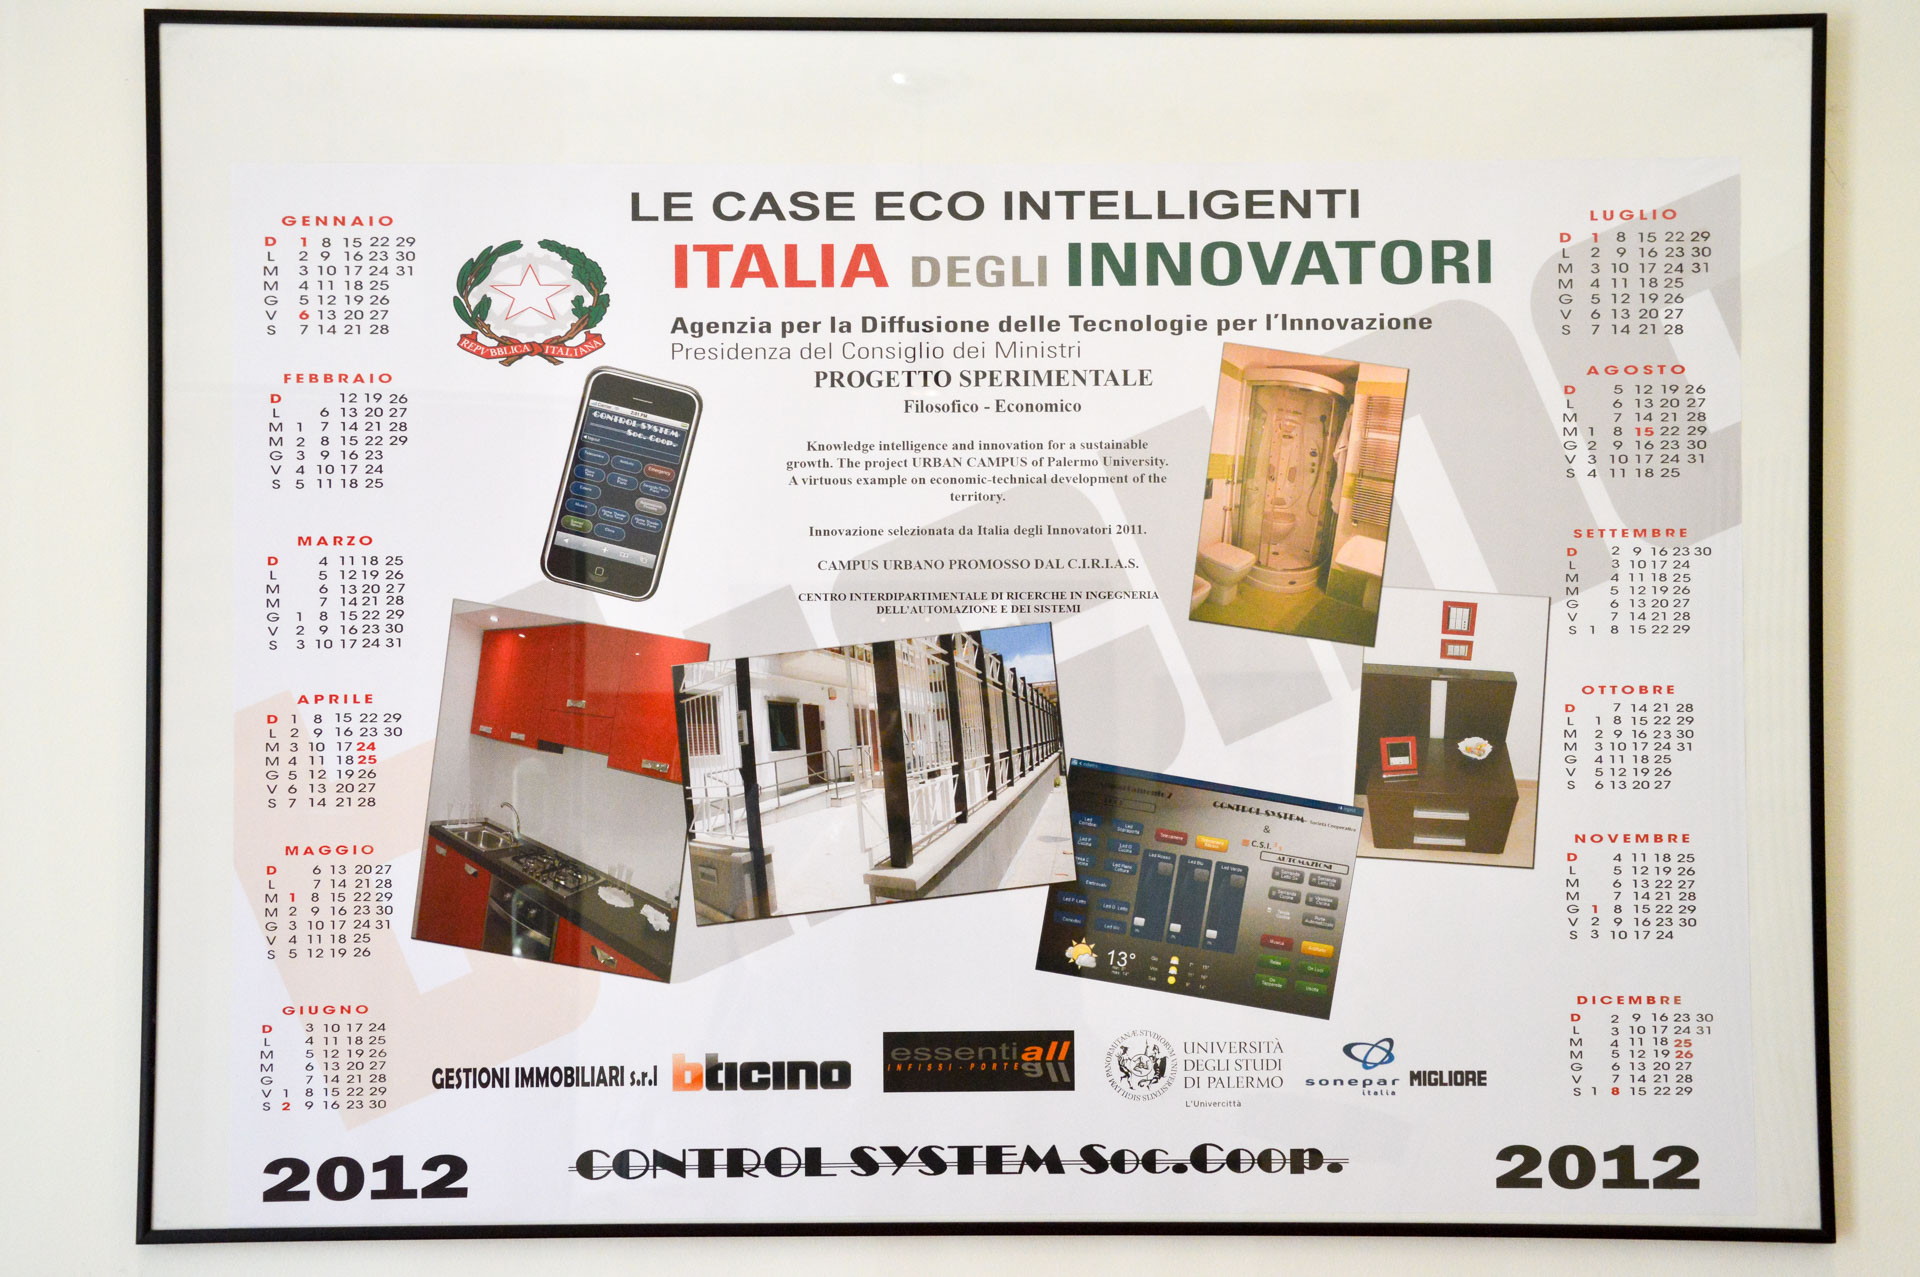 Case eco-intelligenti